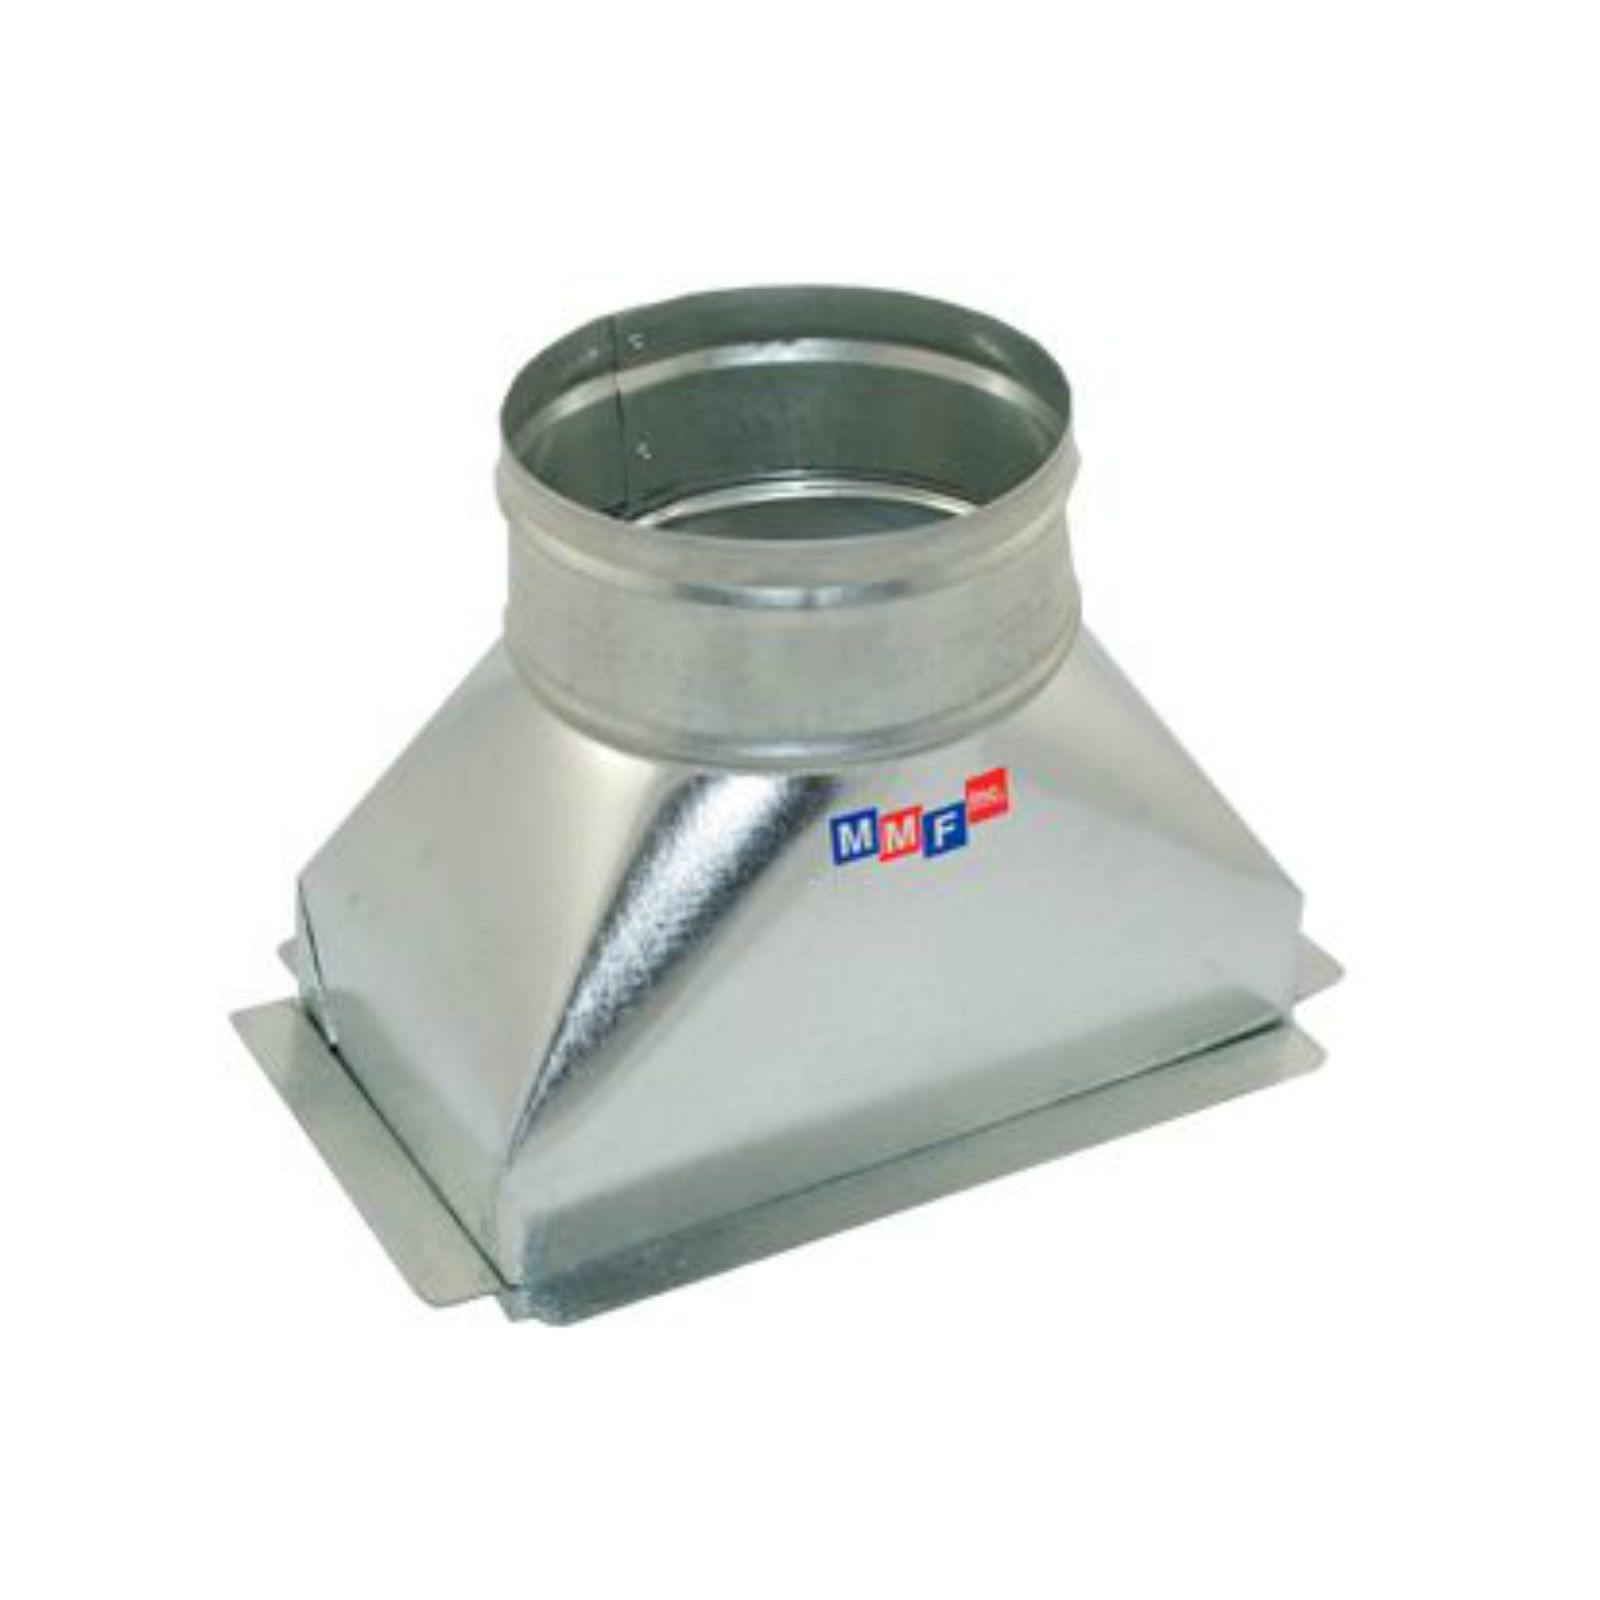 "Modular Metal BTSFG100605E - Sealed Floor Box - 30 Gauge 10"" X 06"" To 05"" Round - With Plaster Ground Flange & Ears"